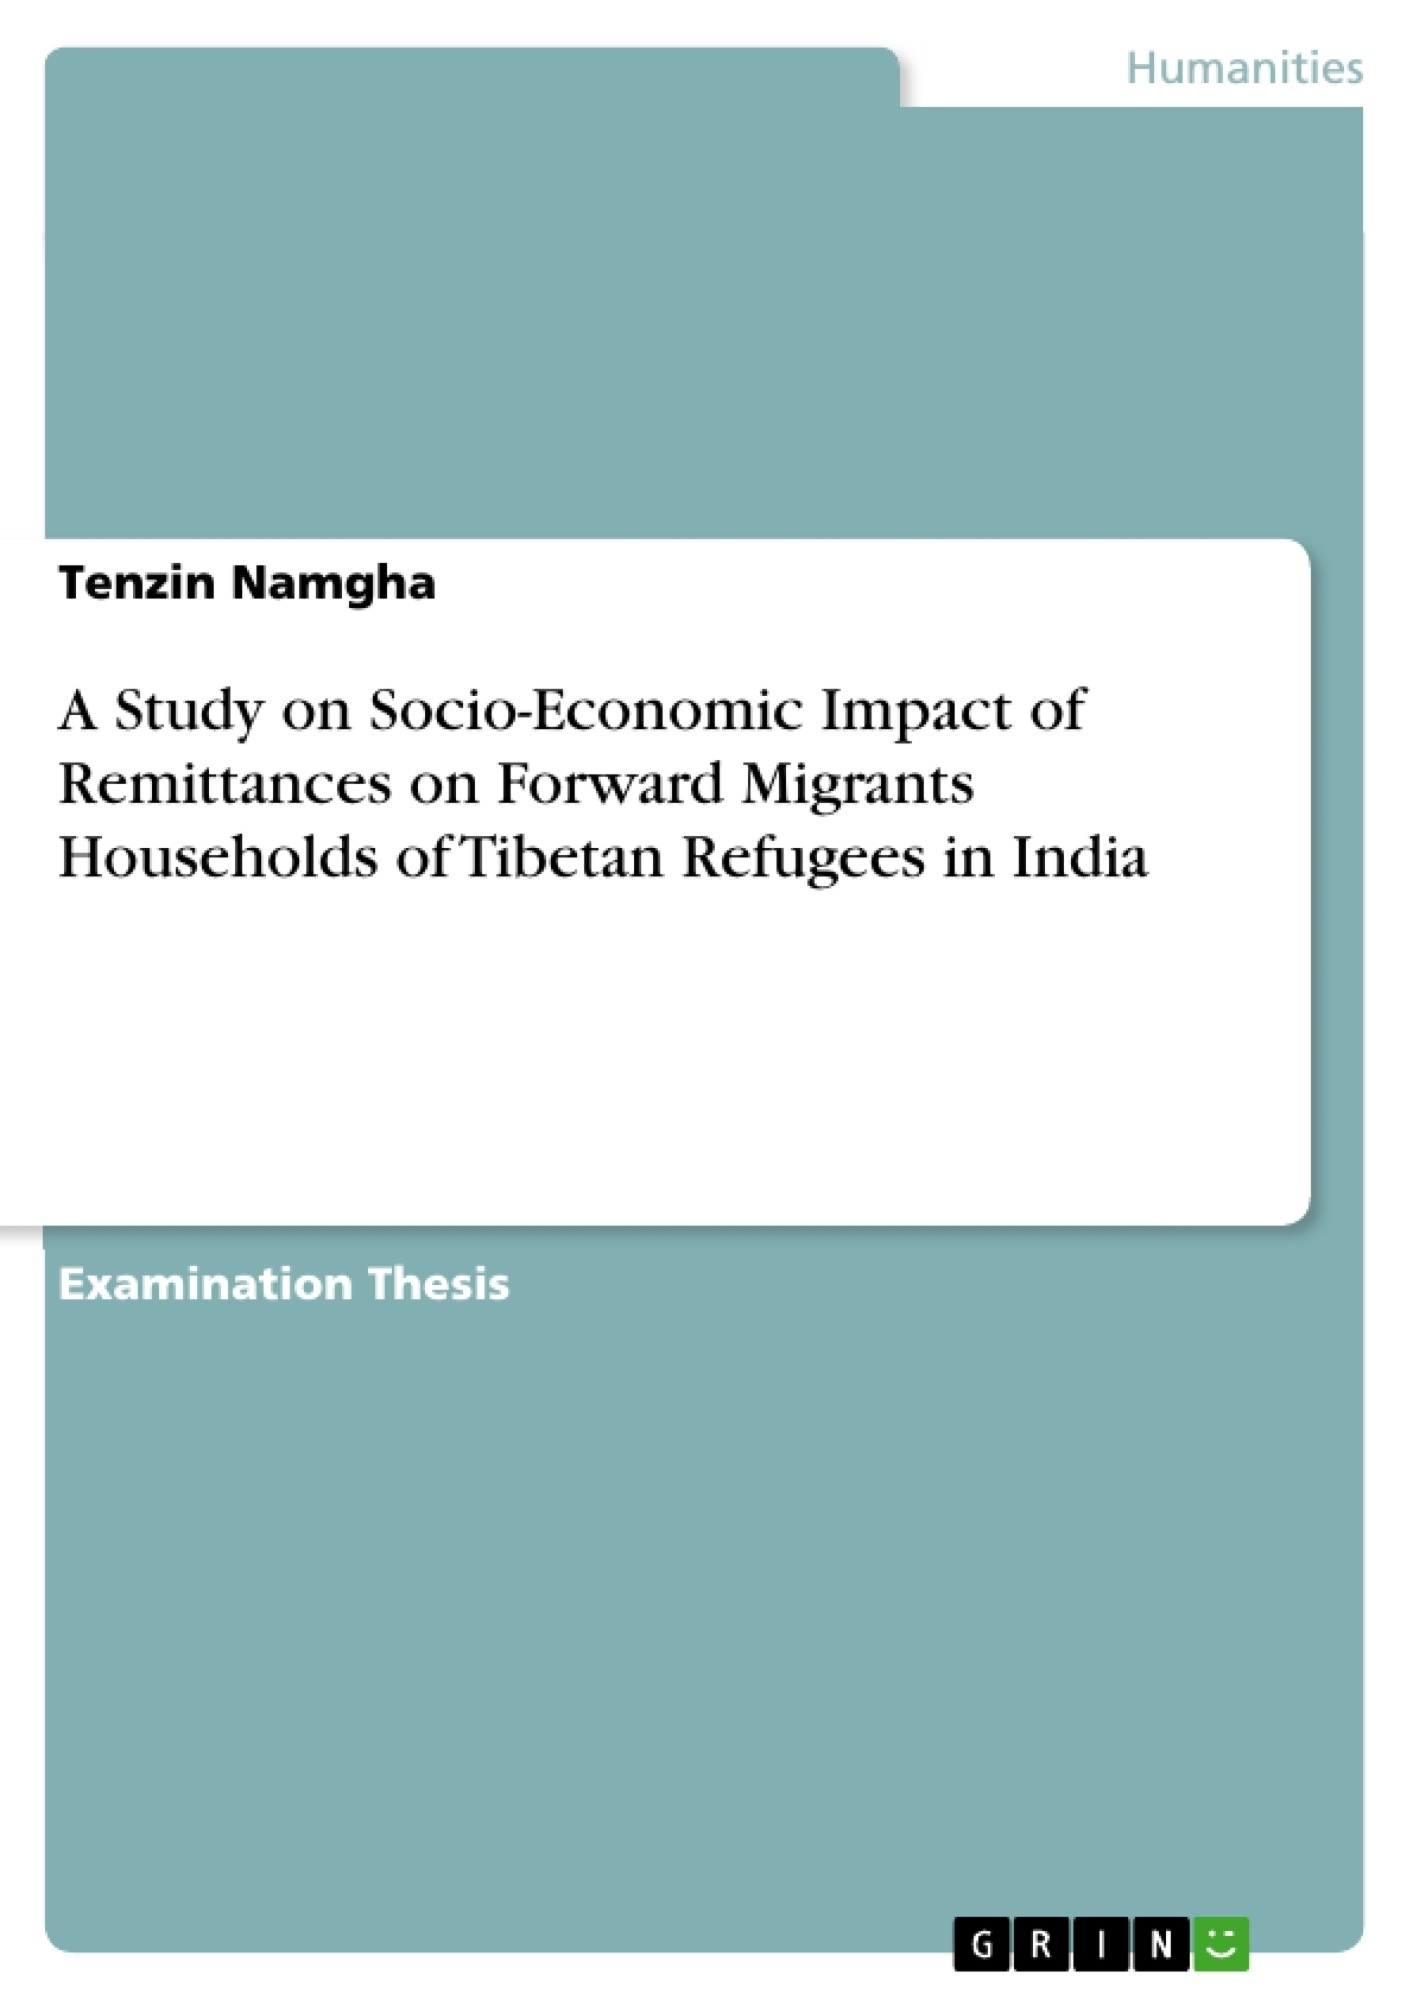 GRIN - A Study on Socio-Economic Impact of Remittances on Forward Migrants  Households of Tibetan Refugees in India